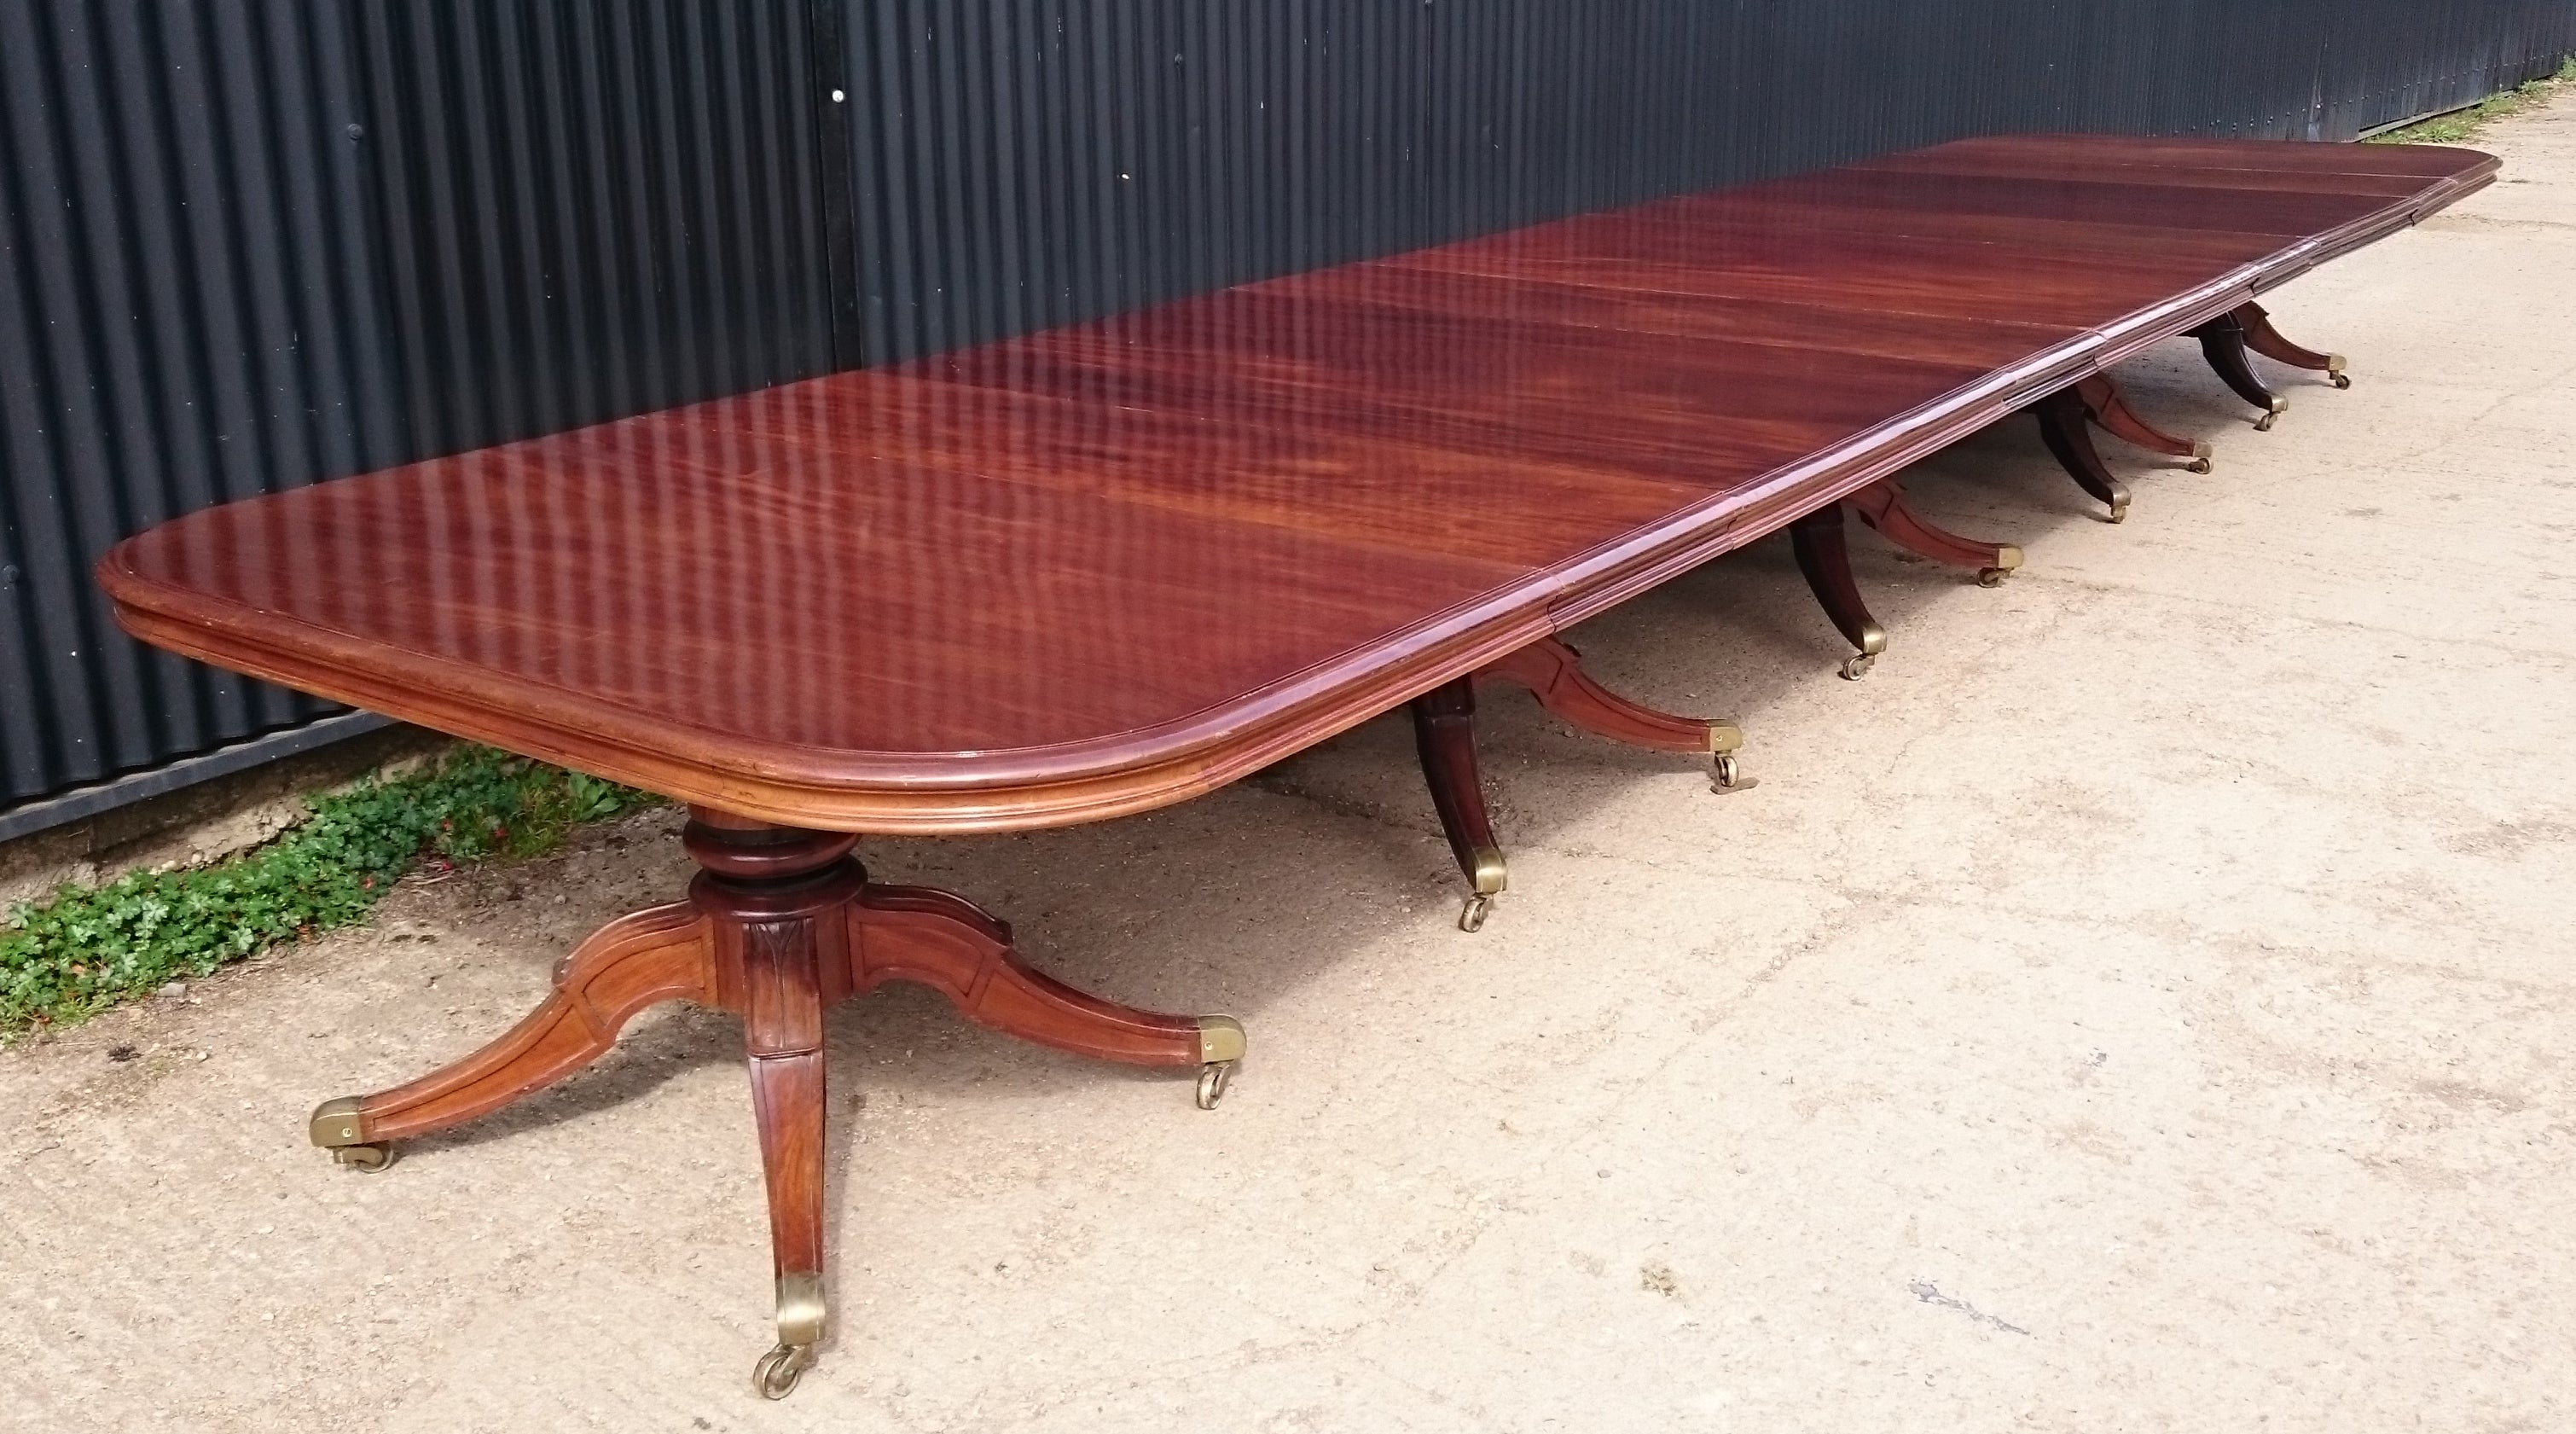 Genial Very Large Early Nineteenth Century Five Pedestal Irish Antique Dining Table